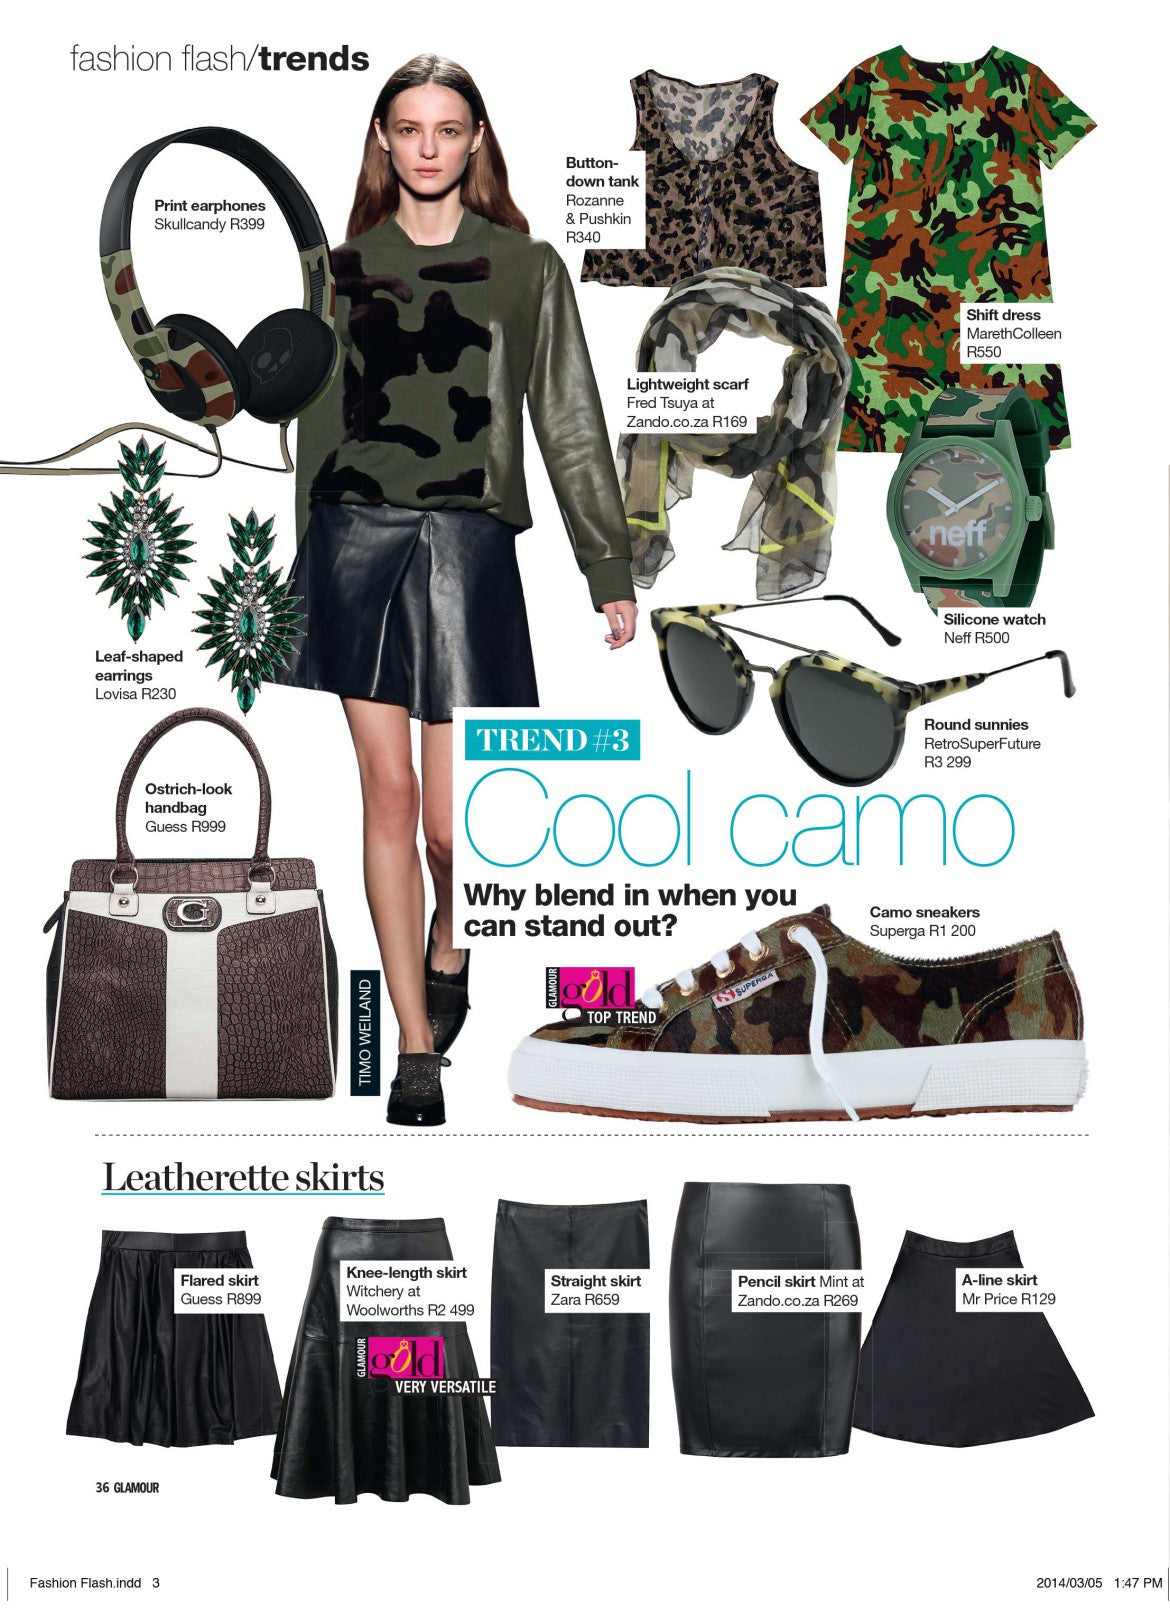 Media: The Camo Shift Features in Glamour Magazine